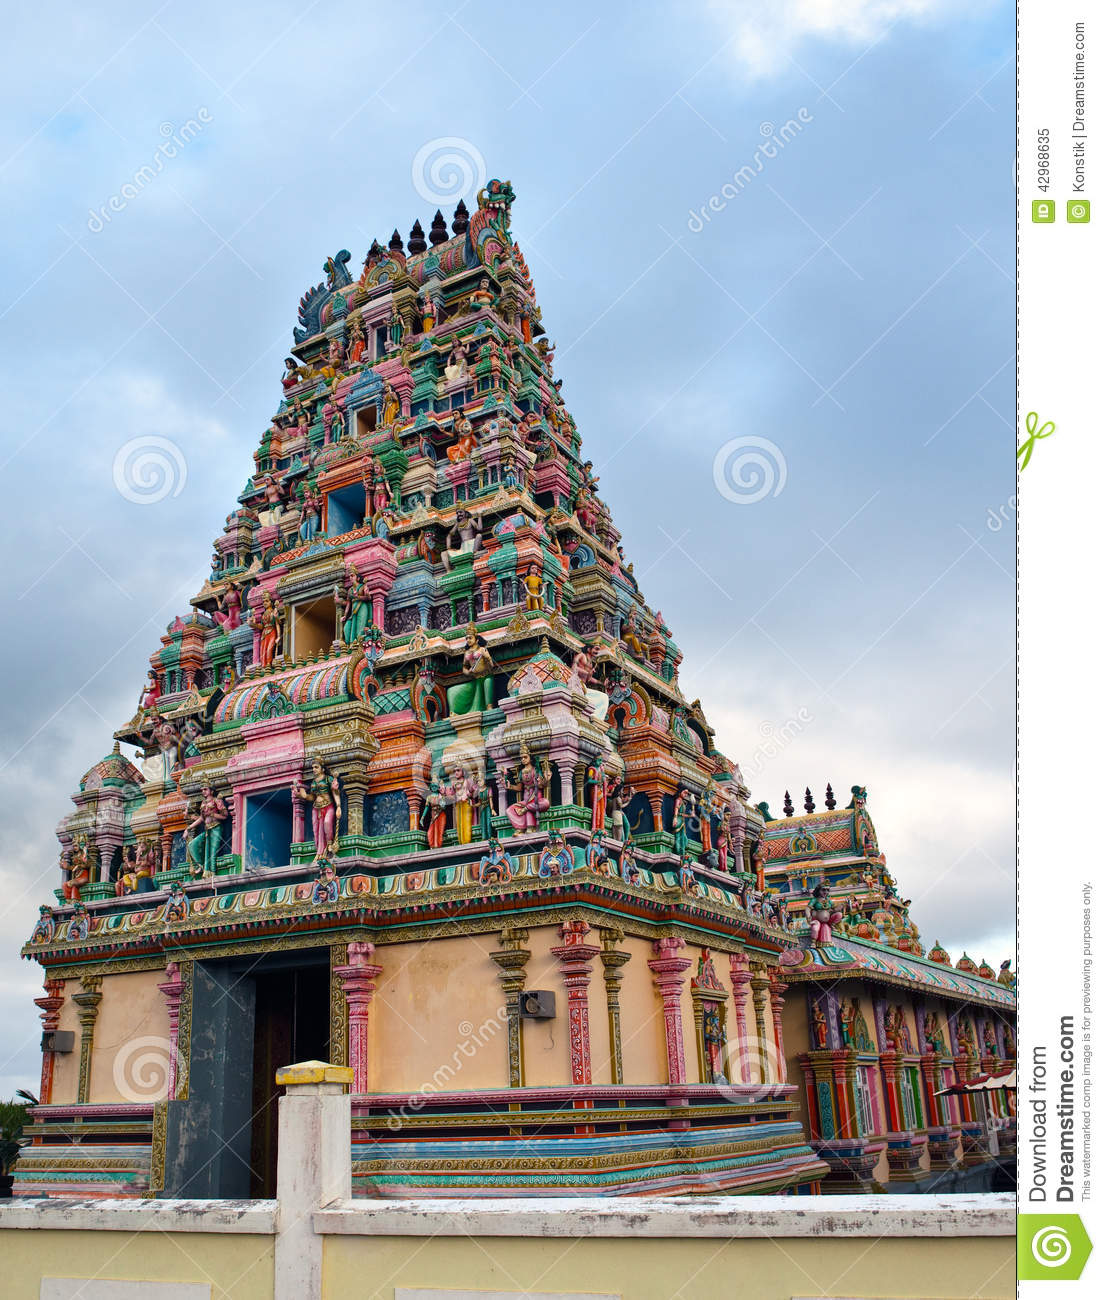 mauritius  hindu temple  stock image  image of architecture